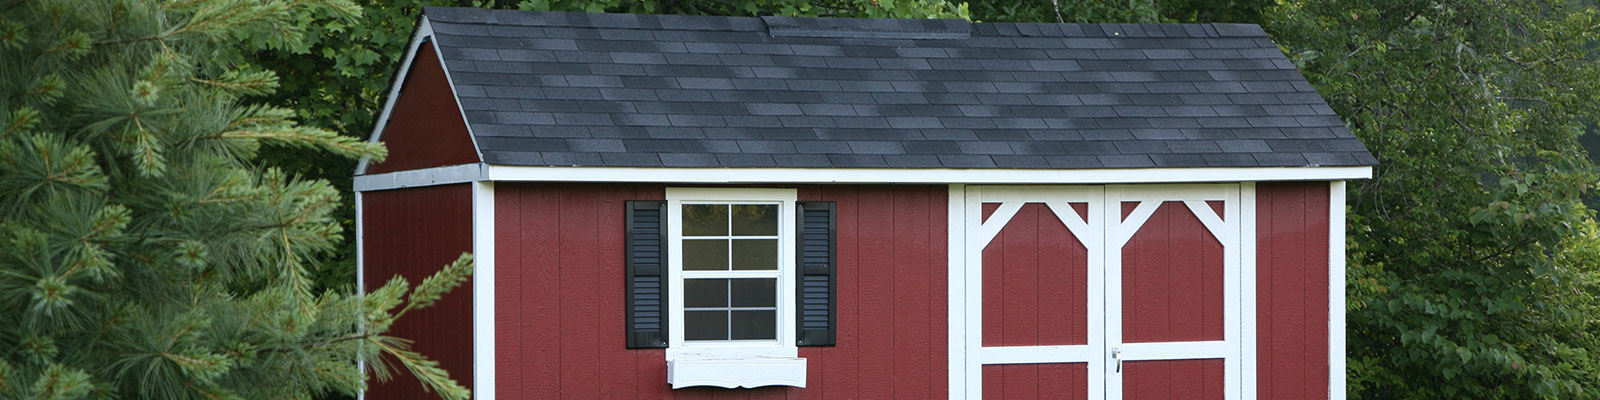 a shed economy storage siding vinyl maintenance free outdoor sheds buy sided collection